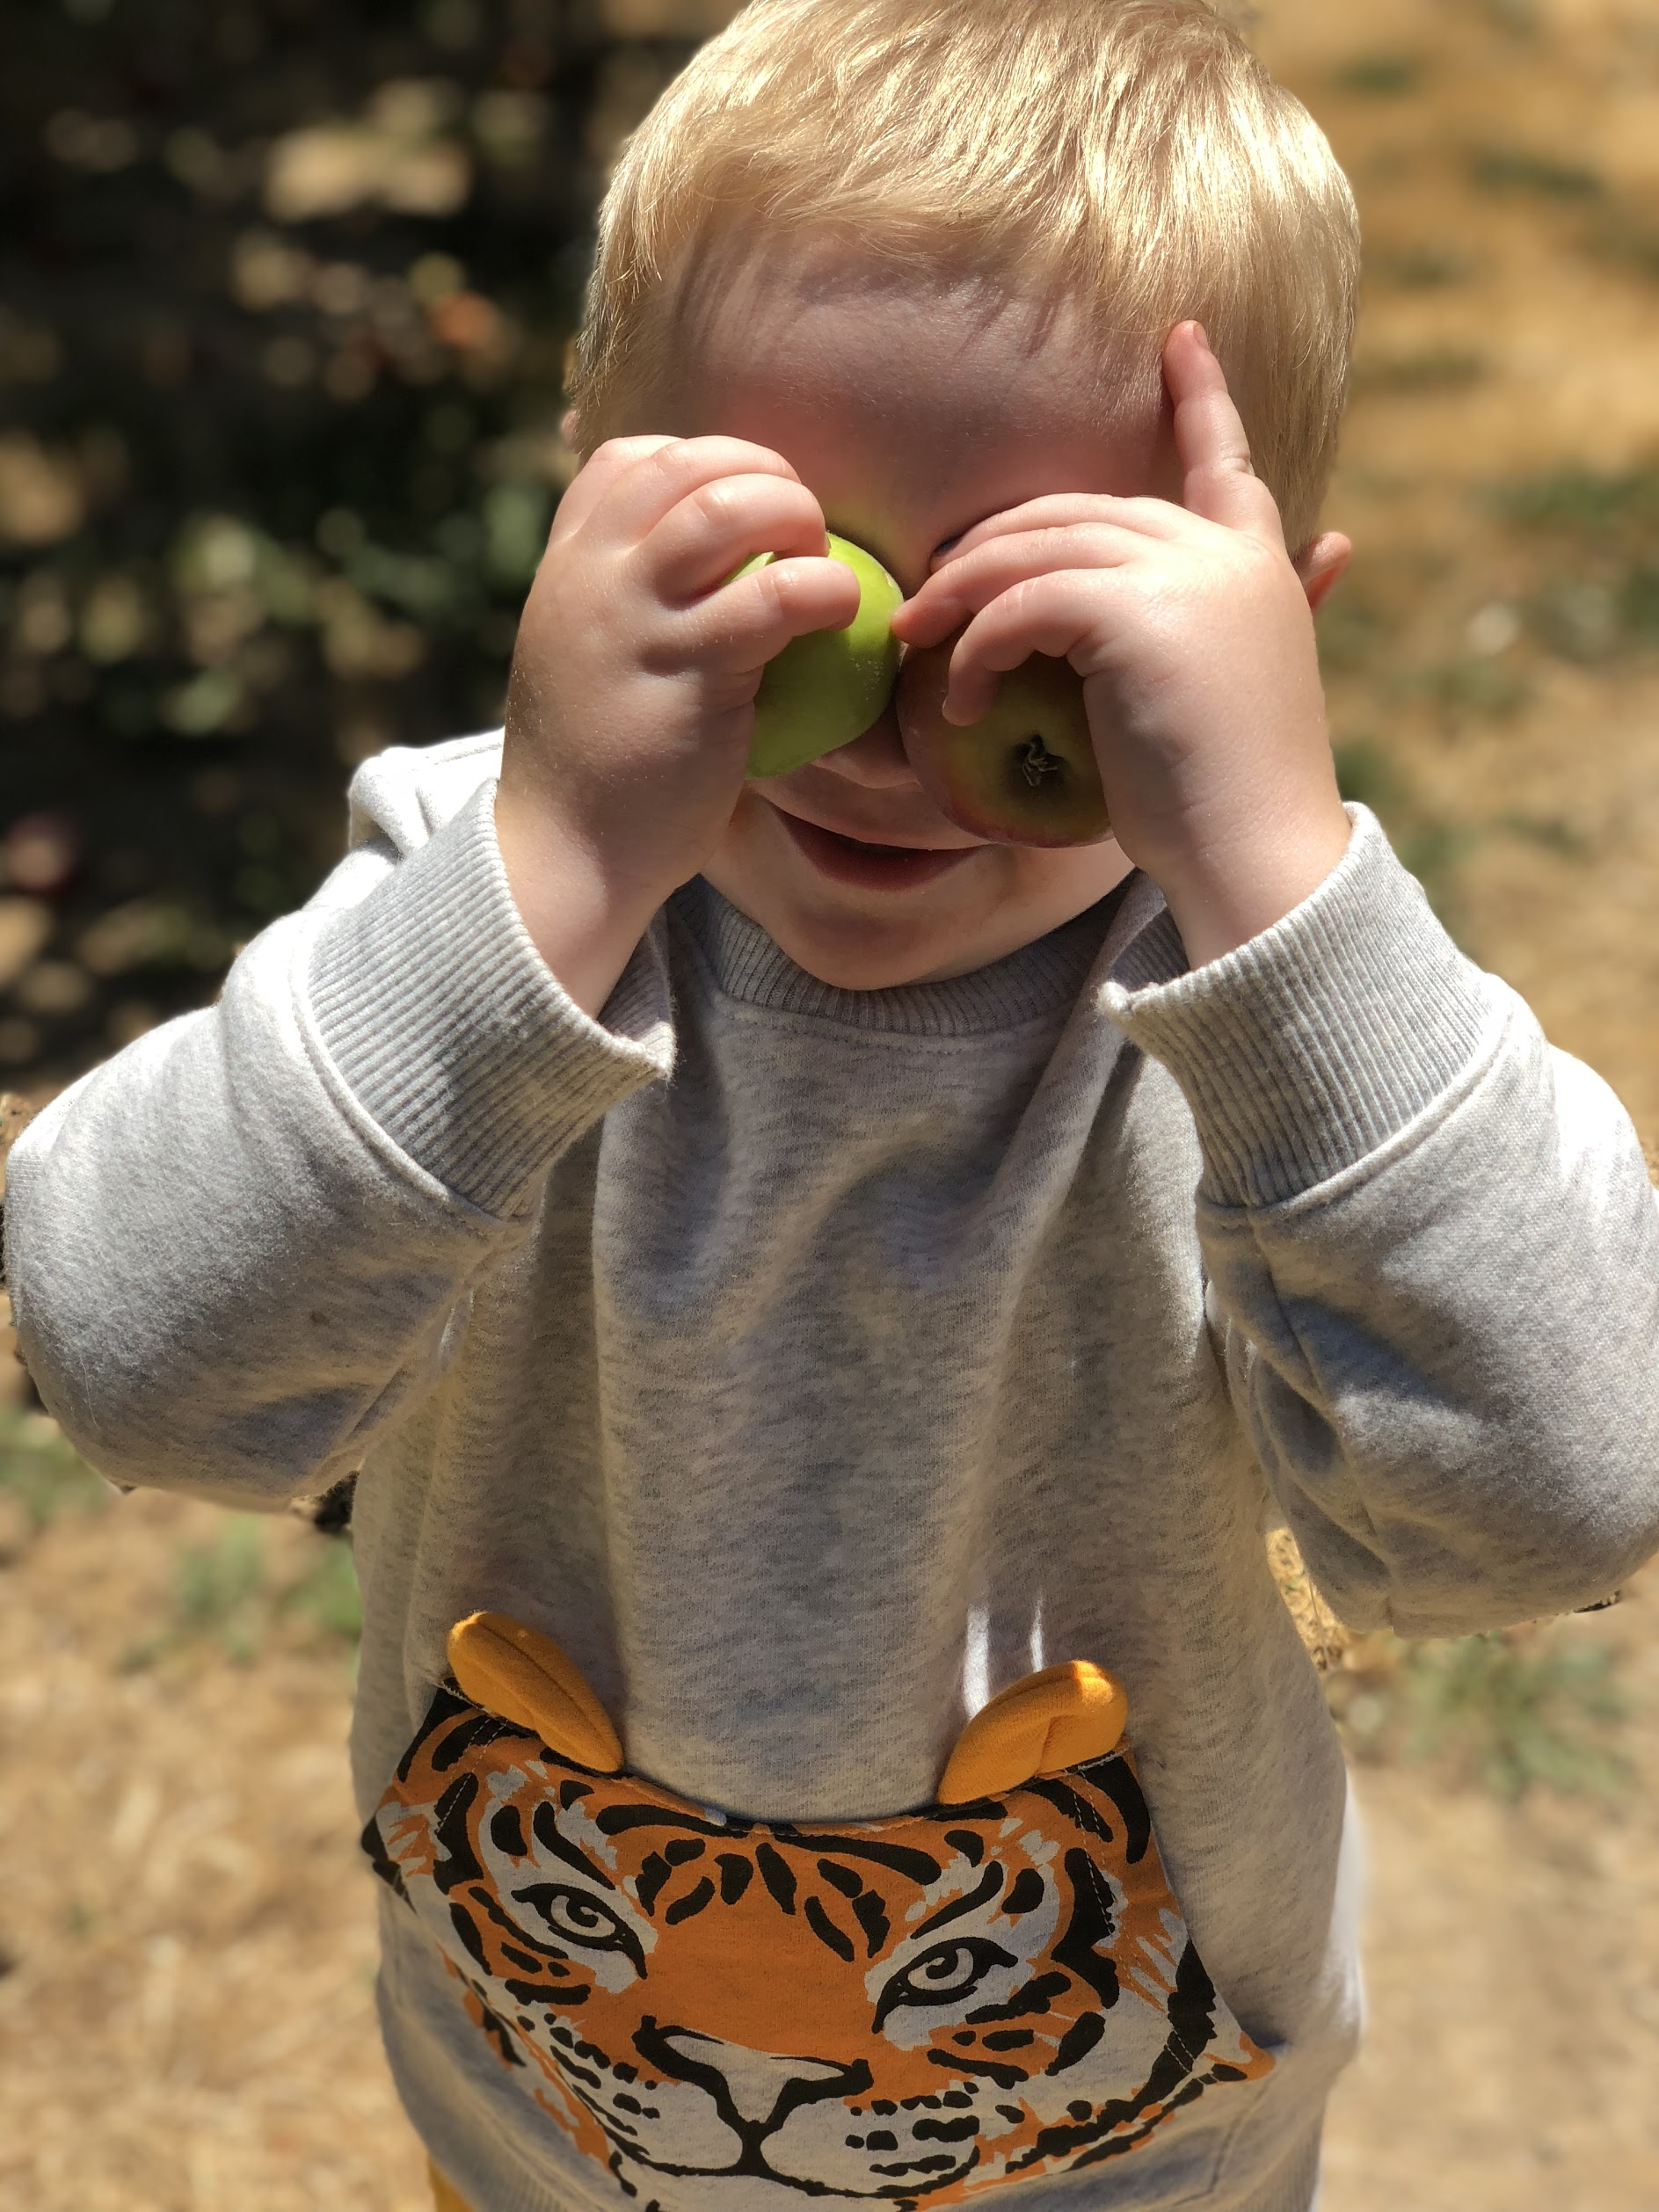 Picking Apples At Horse & Plow Sebastopol